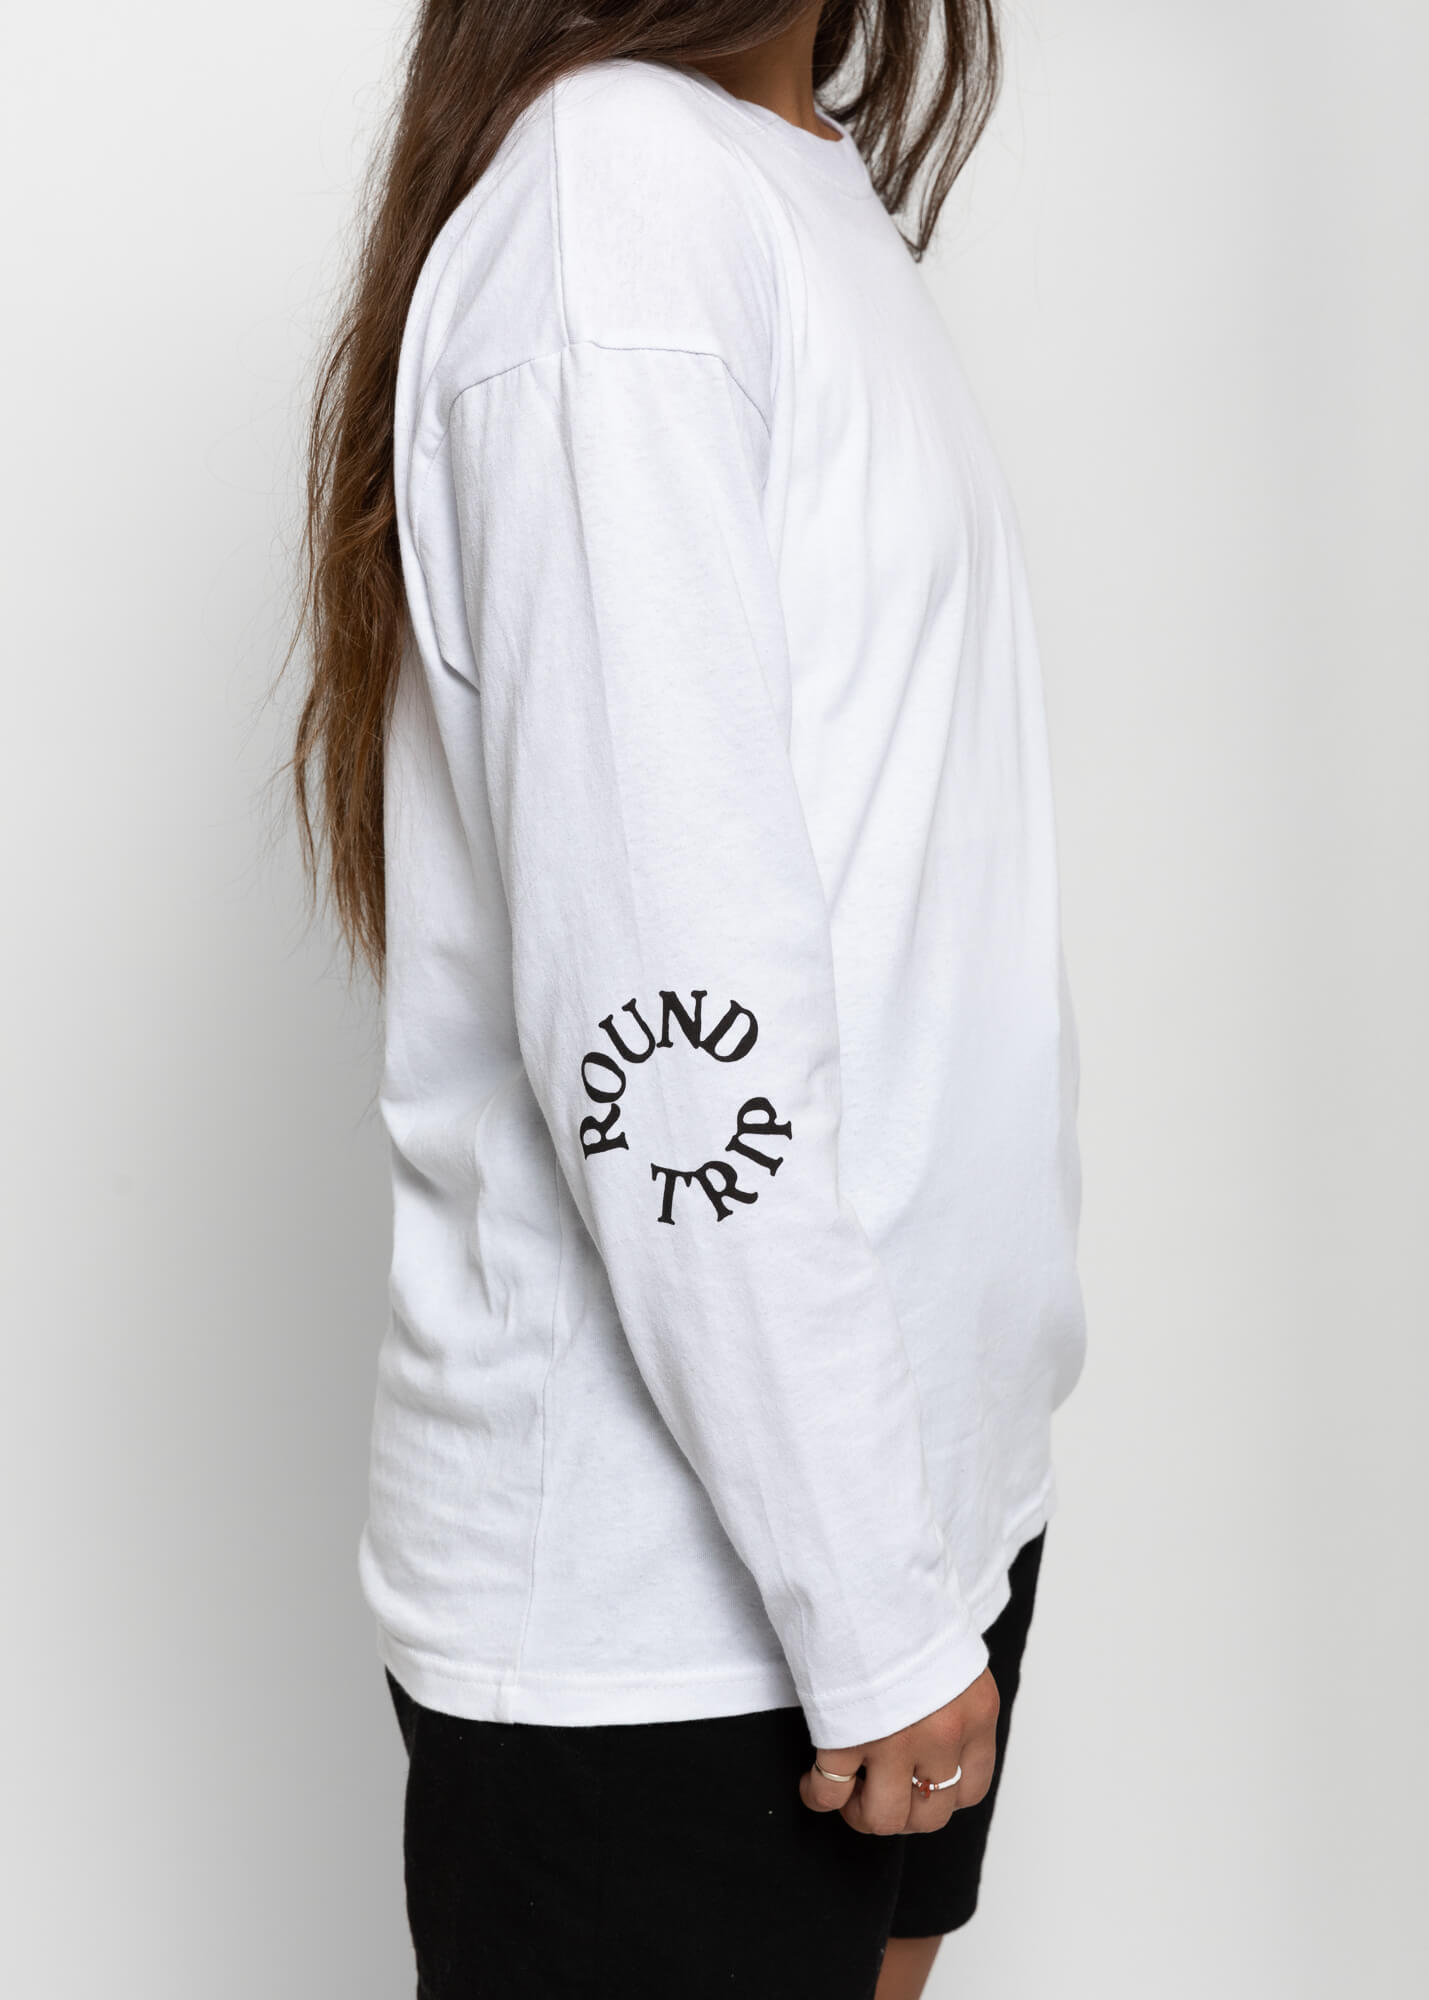 side view of a female model wearing the white round trip longsleeve with the logo on the elbow